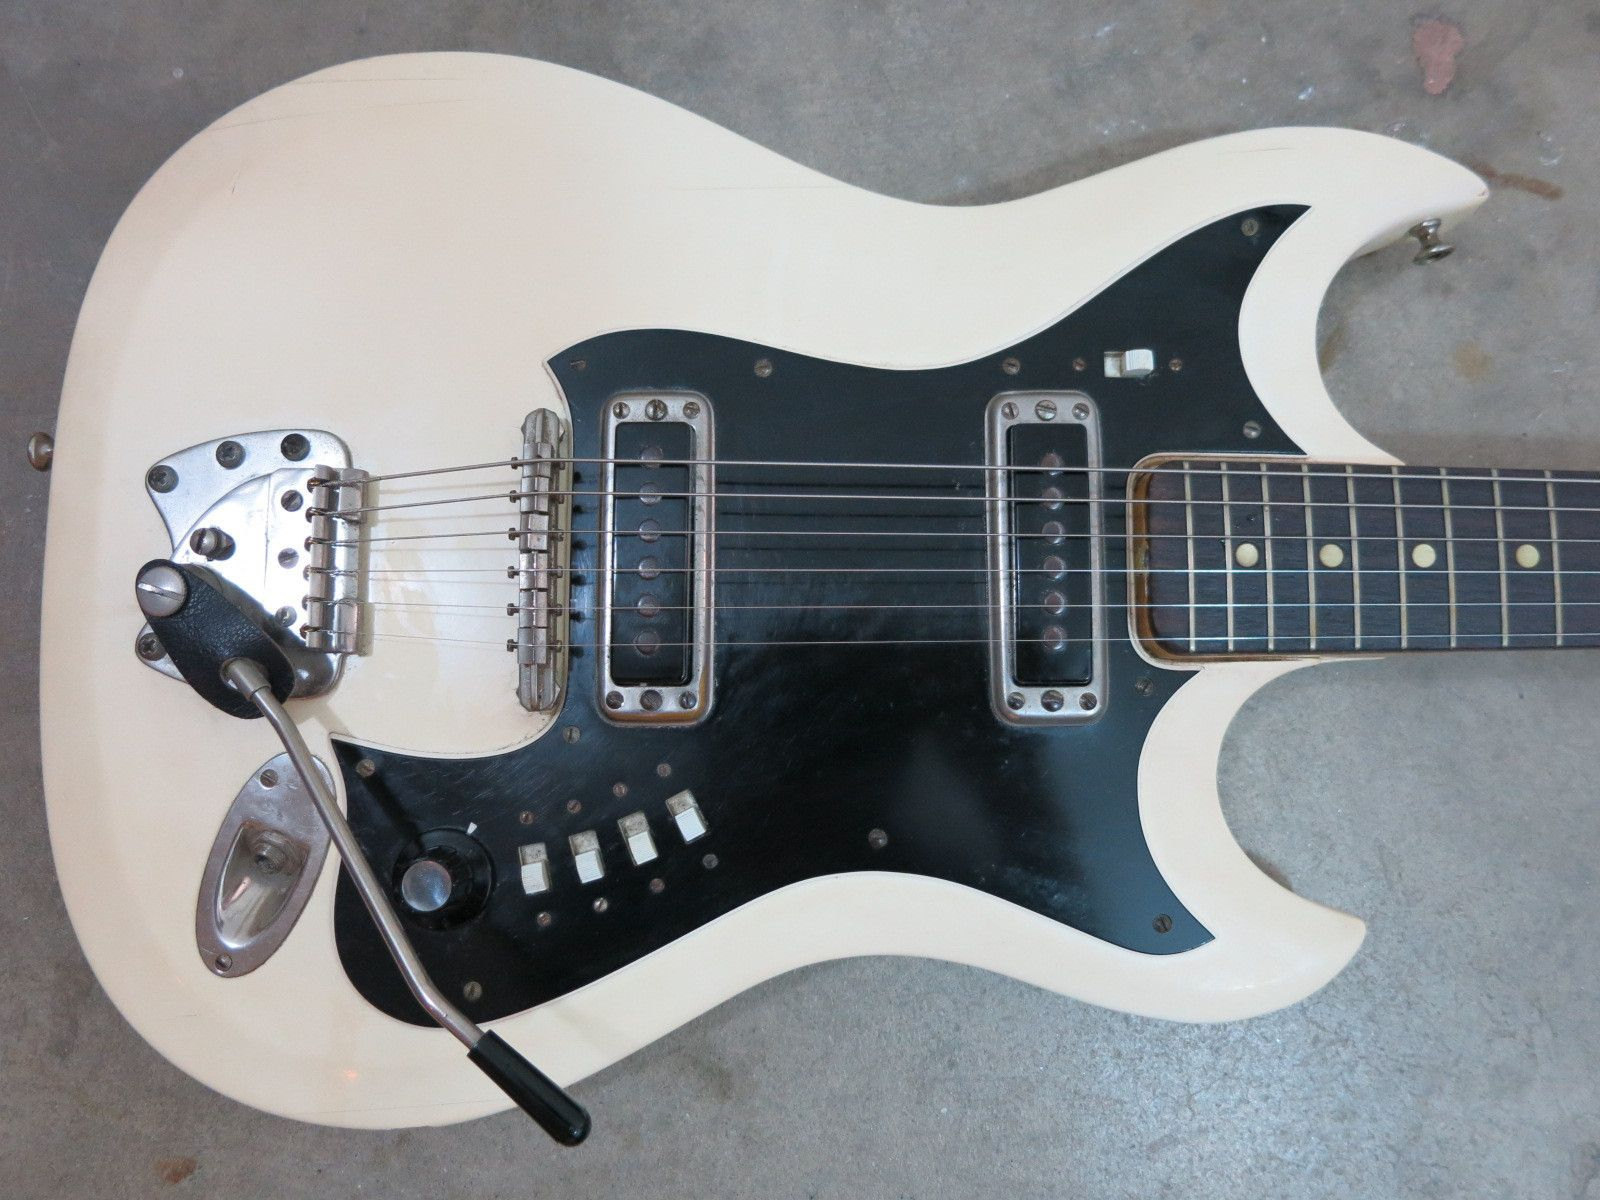 vintage 1960s hagstrom ii electric guitar made in sweden white cream ni vintage classic 60s. Black Bedroom Furniture Sets. Home Design Ideas